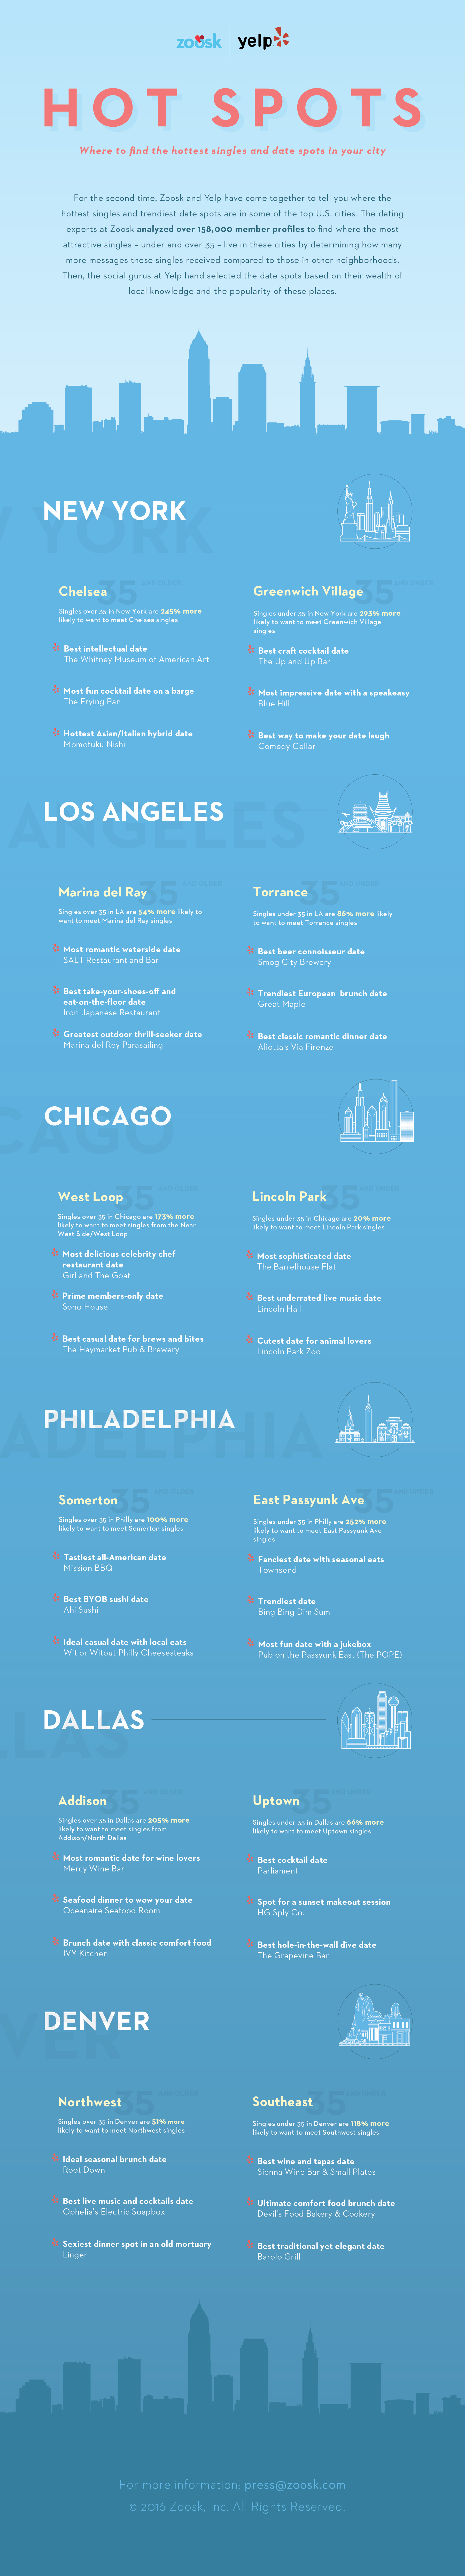 A dating infographic that explains where the hottest singles in your city are.